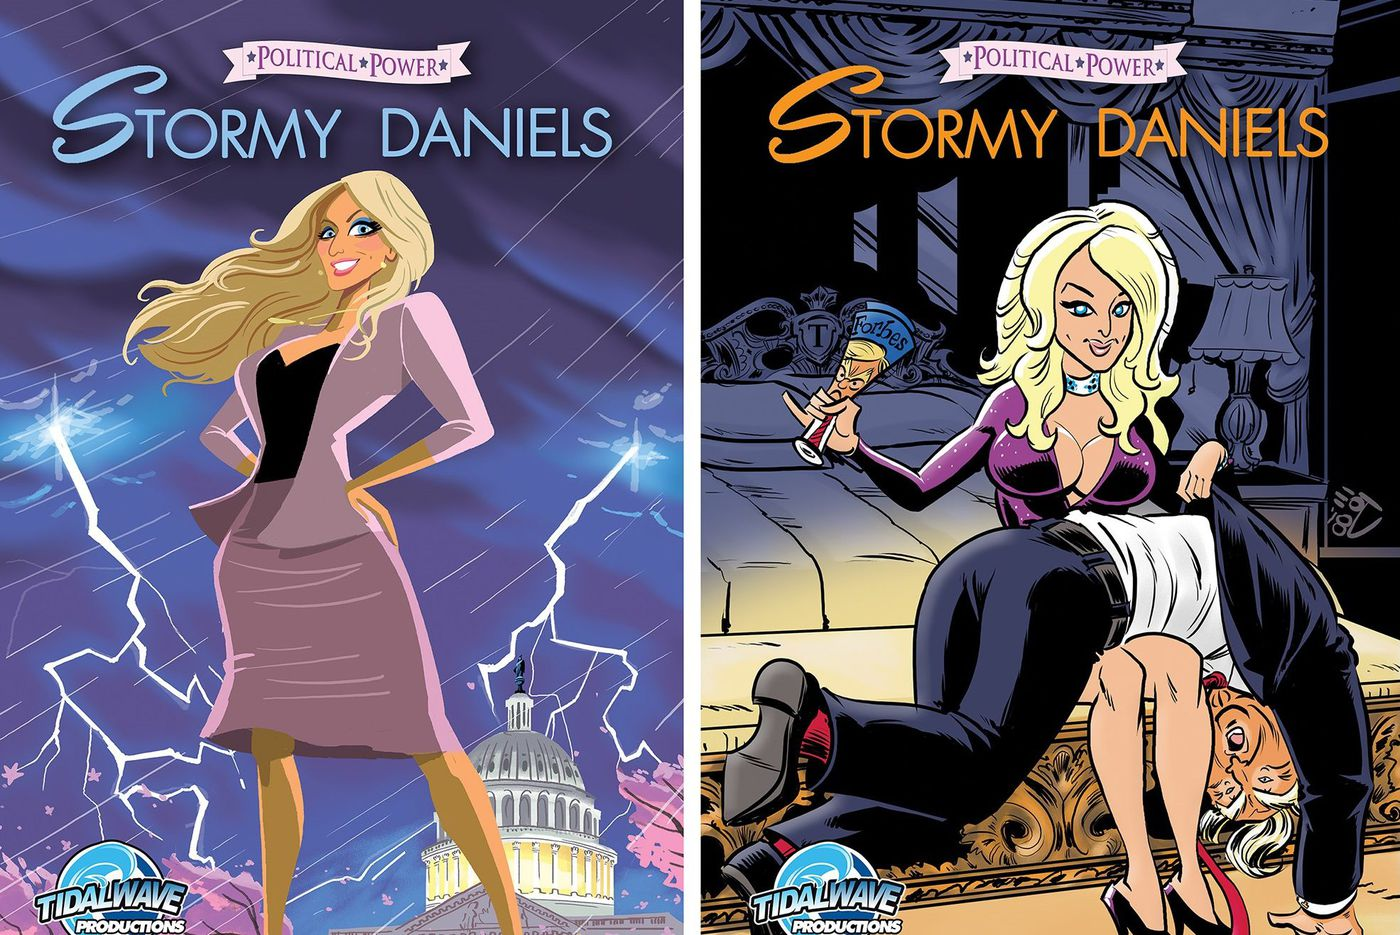 Stormy Daniels gets comic book treatment from Philly artist